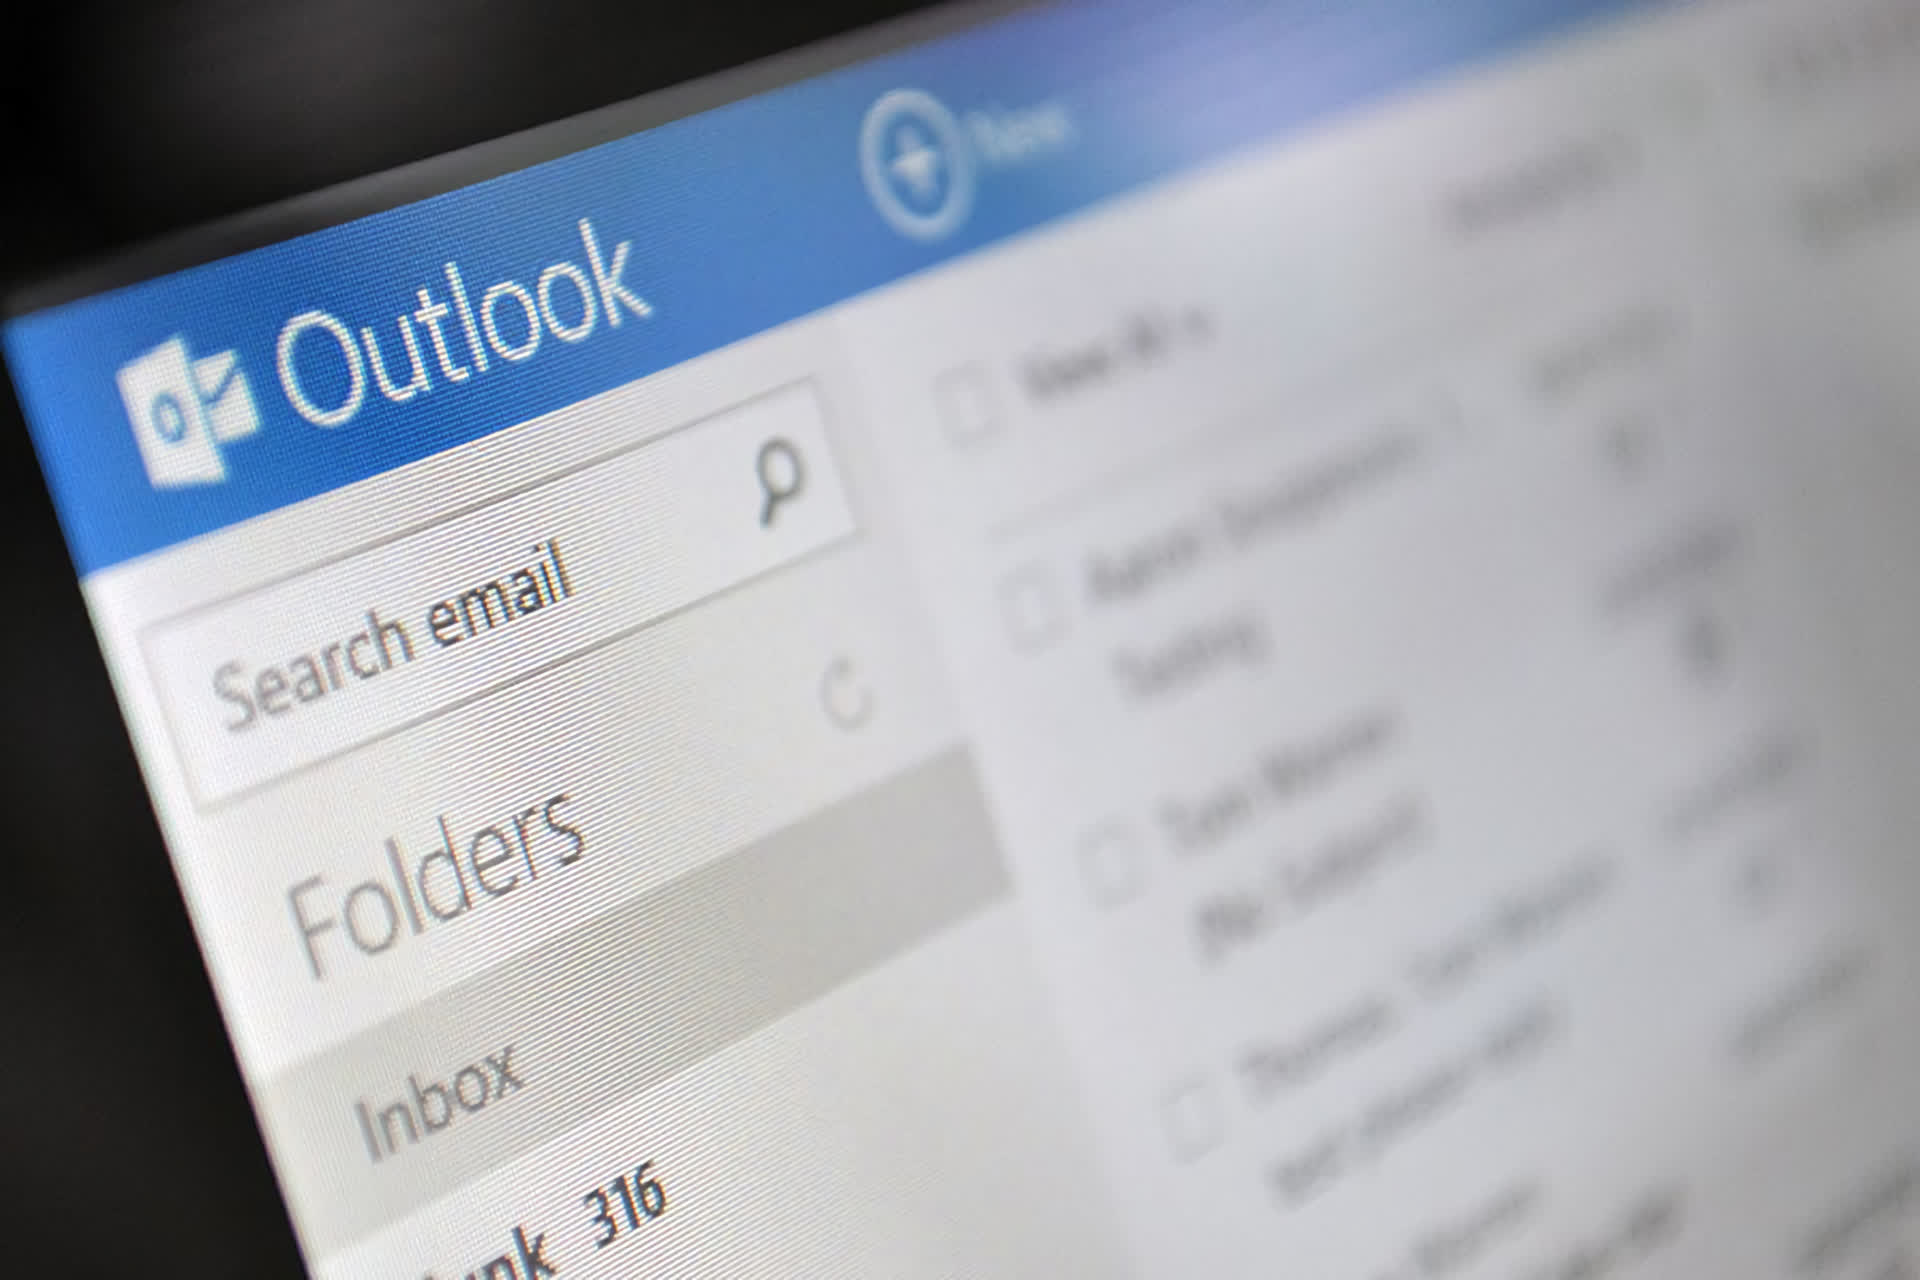 Microsoft plans to get rid of desktop Outlook apps in favor of unified web app